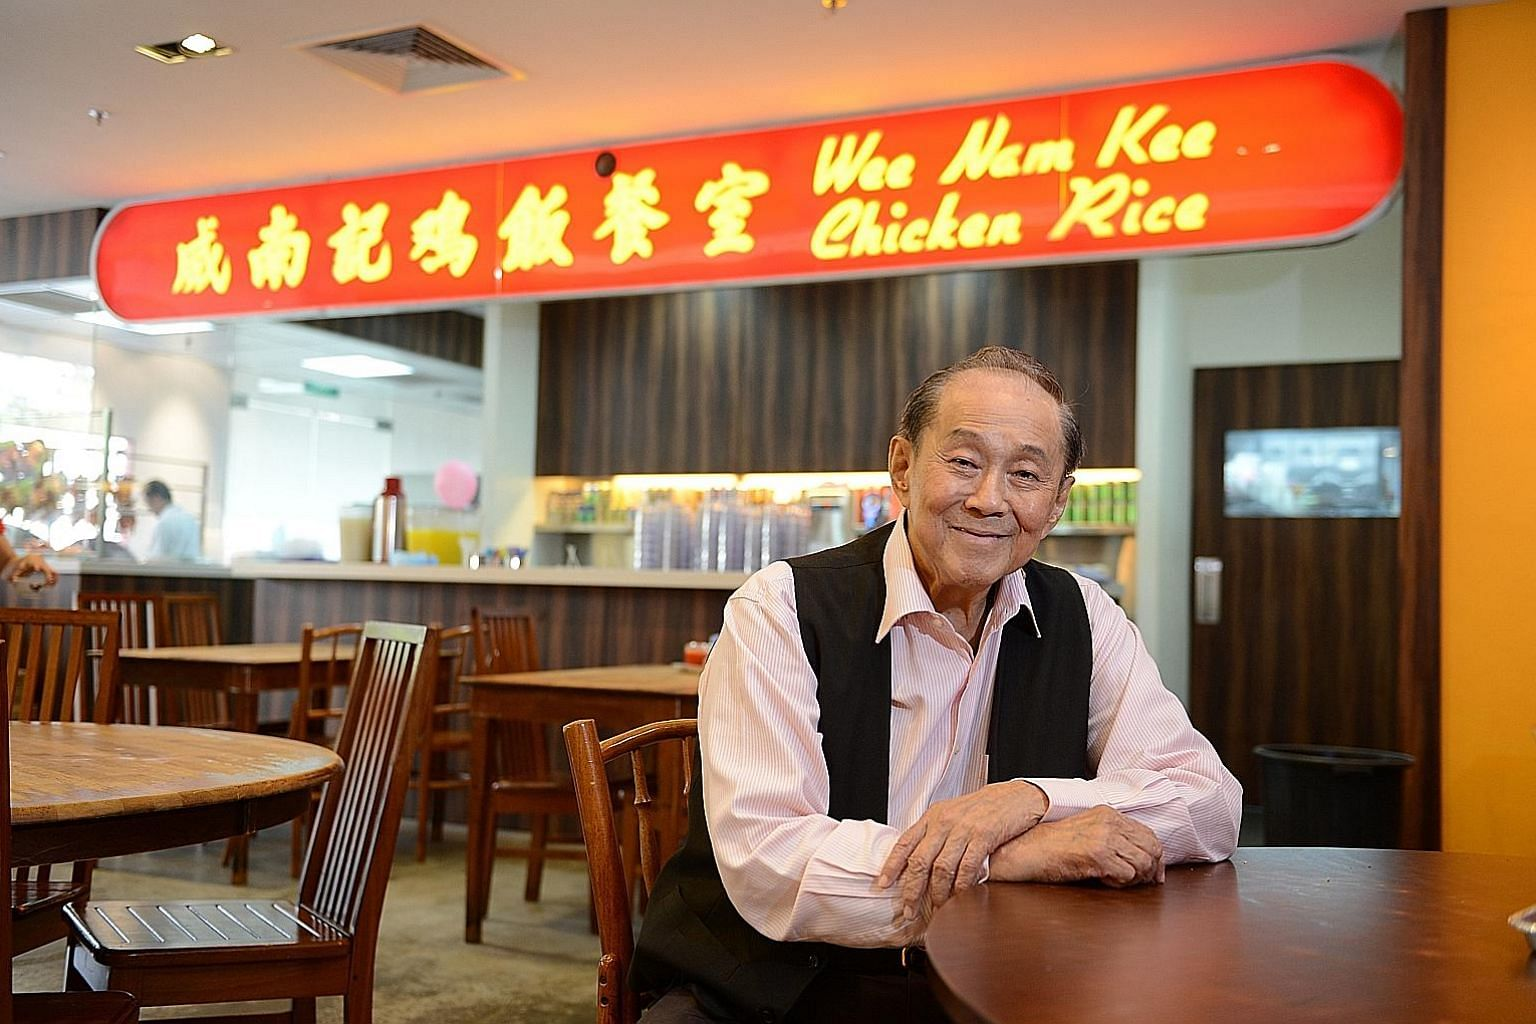 Mr Wee Toon Ouut was a welcoming sight for the writer whenever he dined at Wee Nam Kee, and his conversations with Mr Wee gave him extraordinary insights into people and events in Singapore's past.